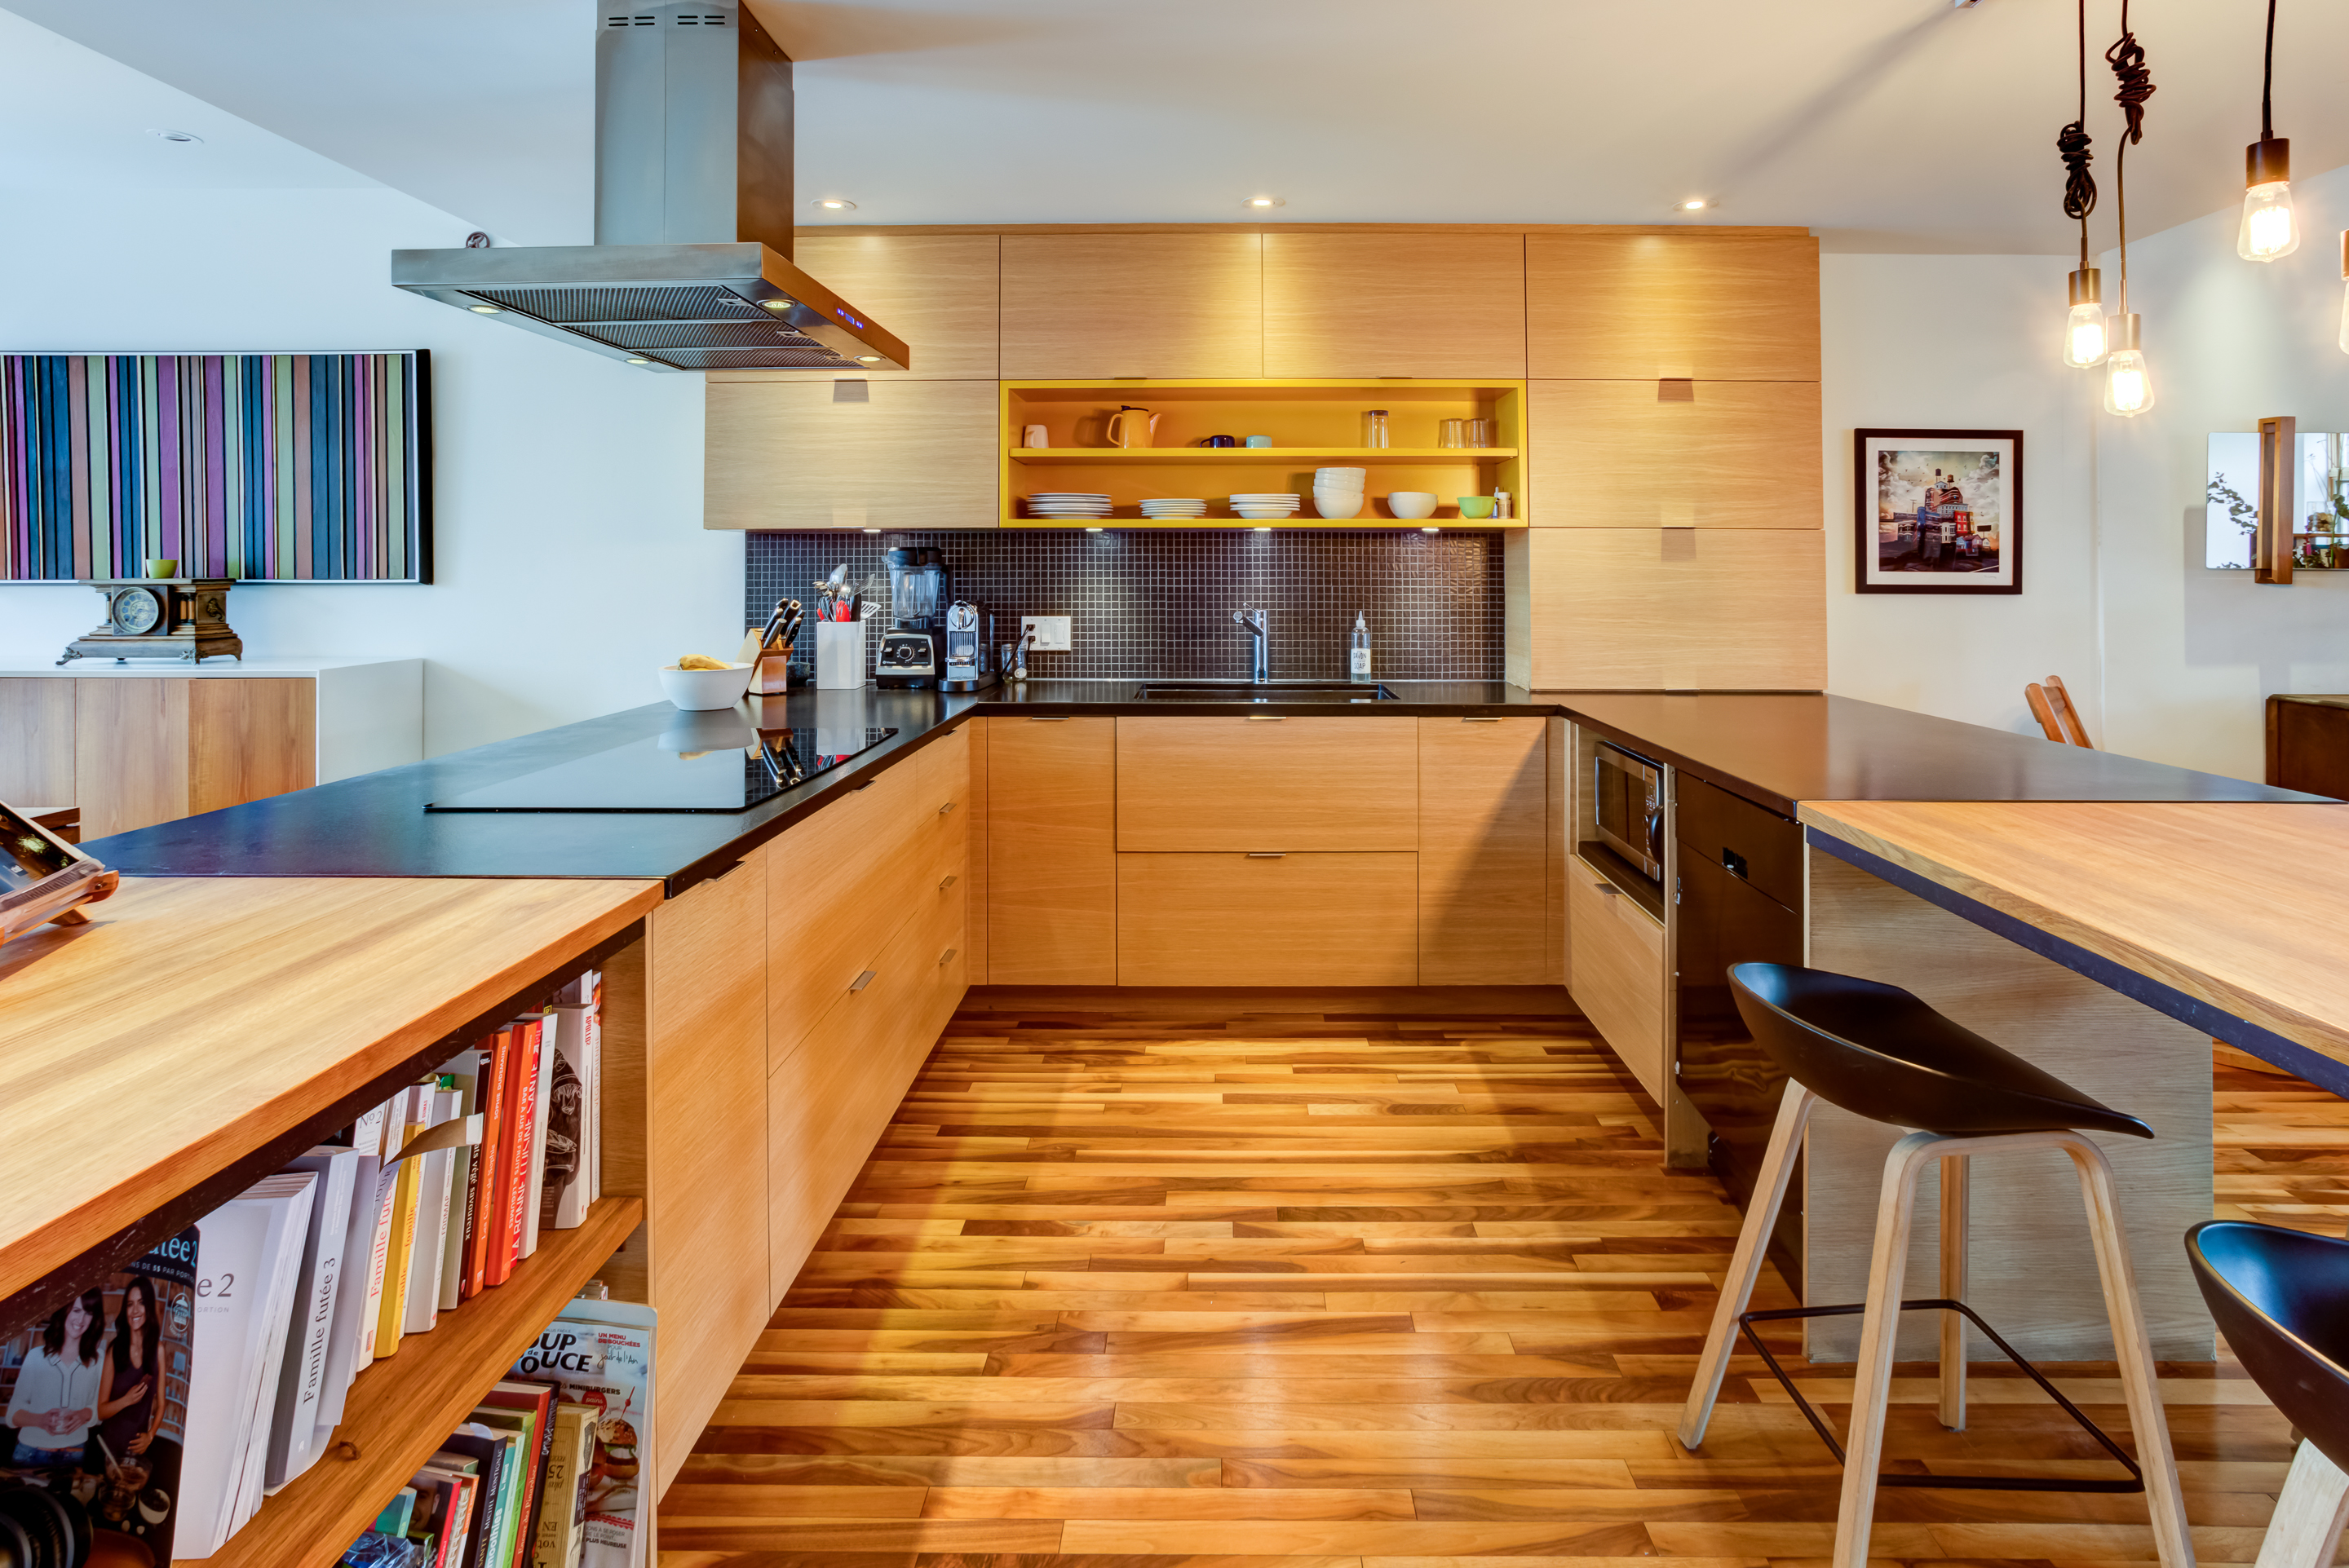 Full design of a U-shaped kitchen, wooden cabinet and breakfast area included at the counter